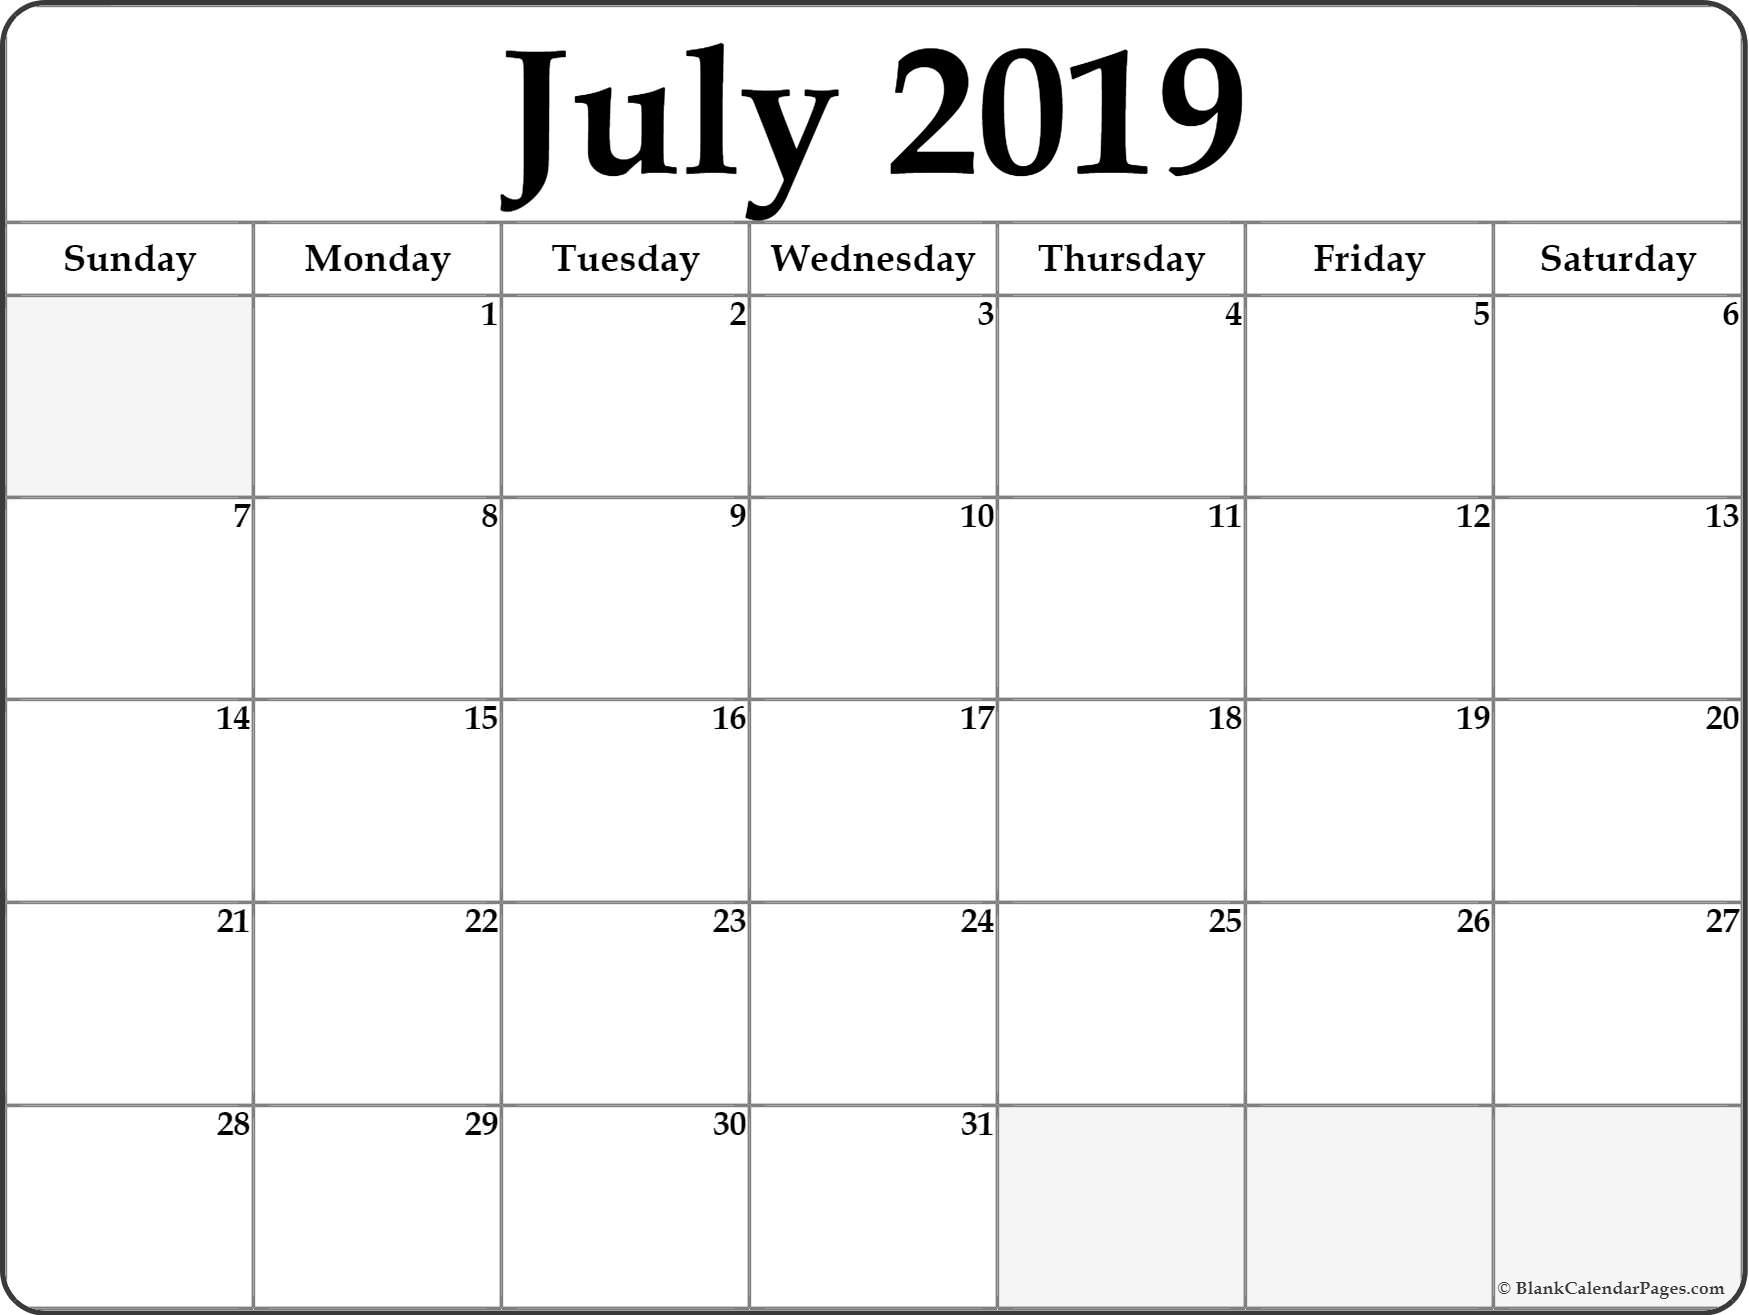 July 2019 Calendar | Free Printable Monthly Calendars intended for Free At A Glance Editable Calendar July 2019-June 2020